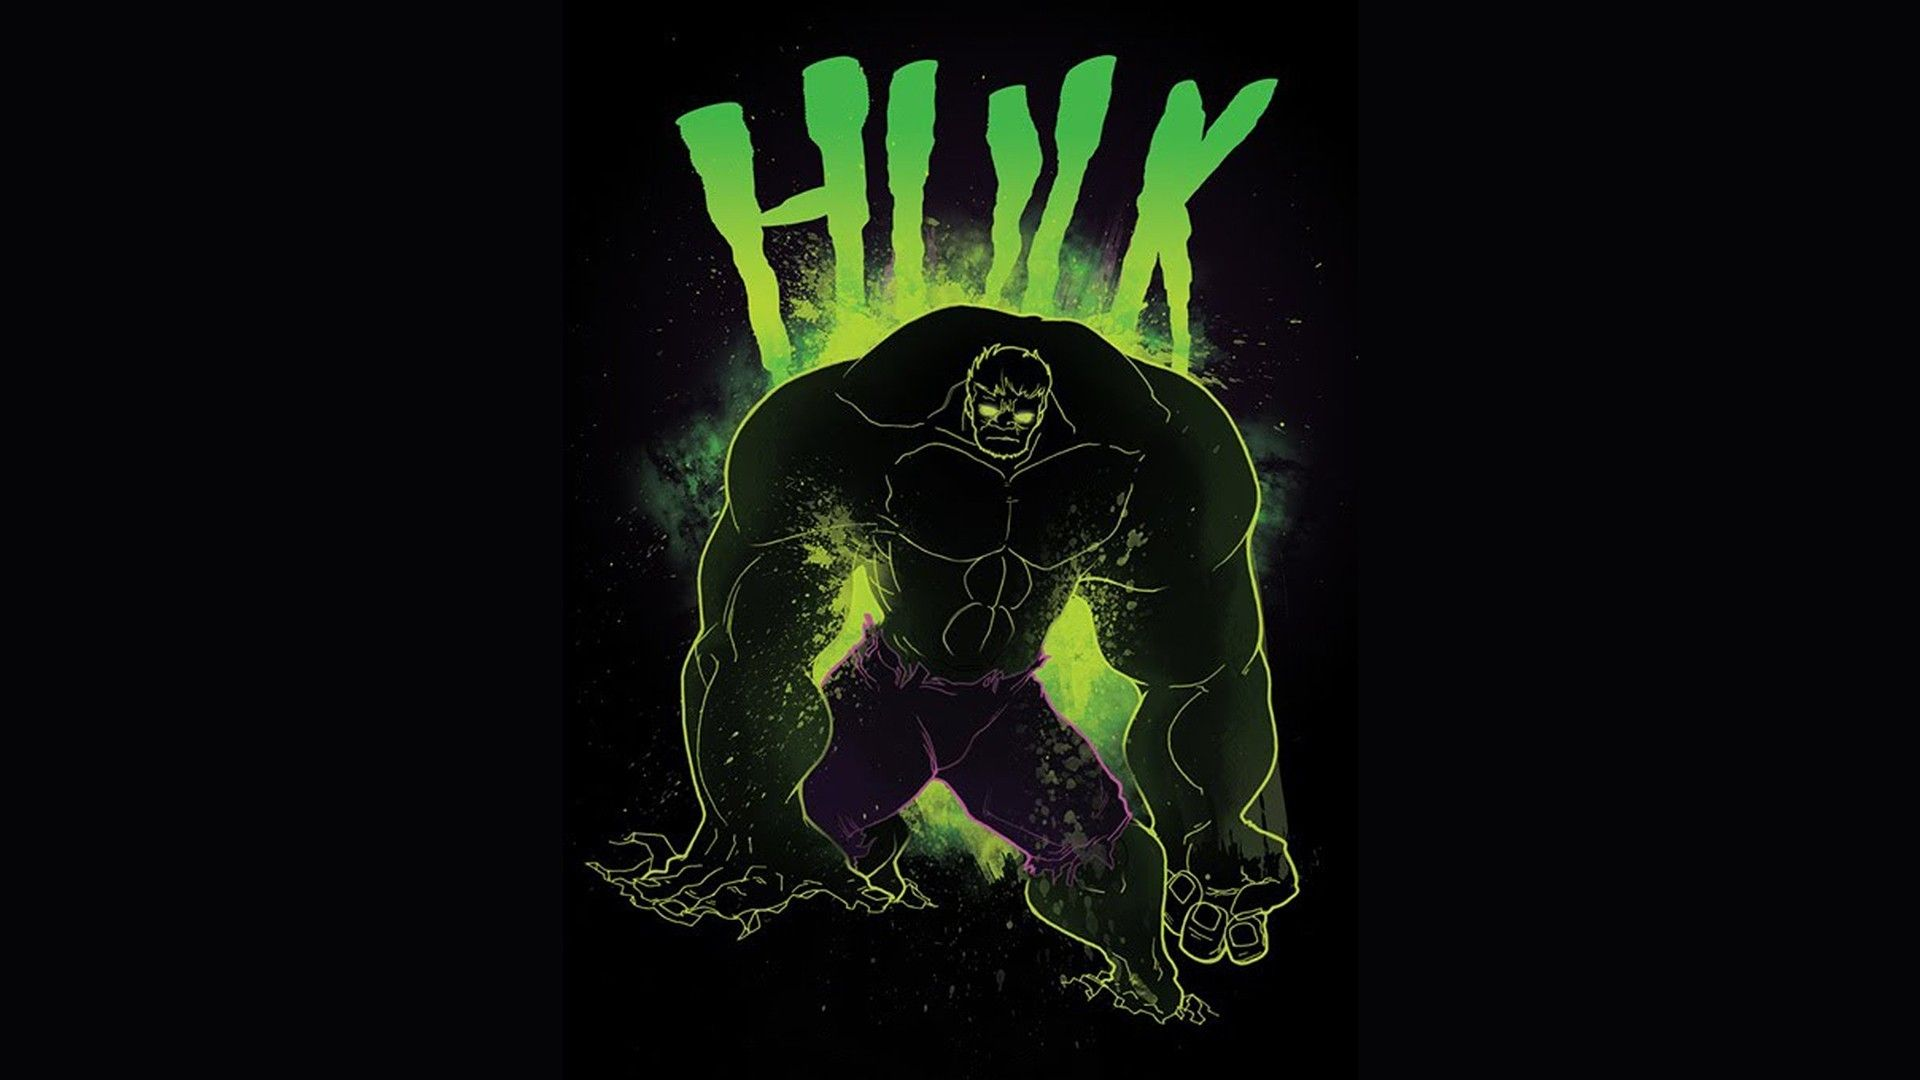 Hulk wallpapers wallpaper 19201200 wallpaper hulk 57 wallpapers hulk wallpapers wallpaper 19201200 wallpaper hulk 57 wallpapers adorable wallpapers voltagebd Choice Image